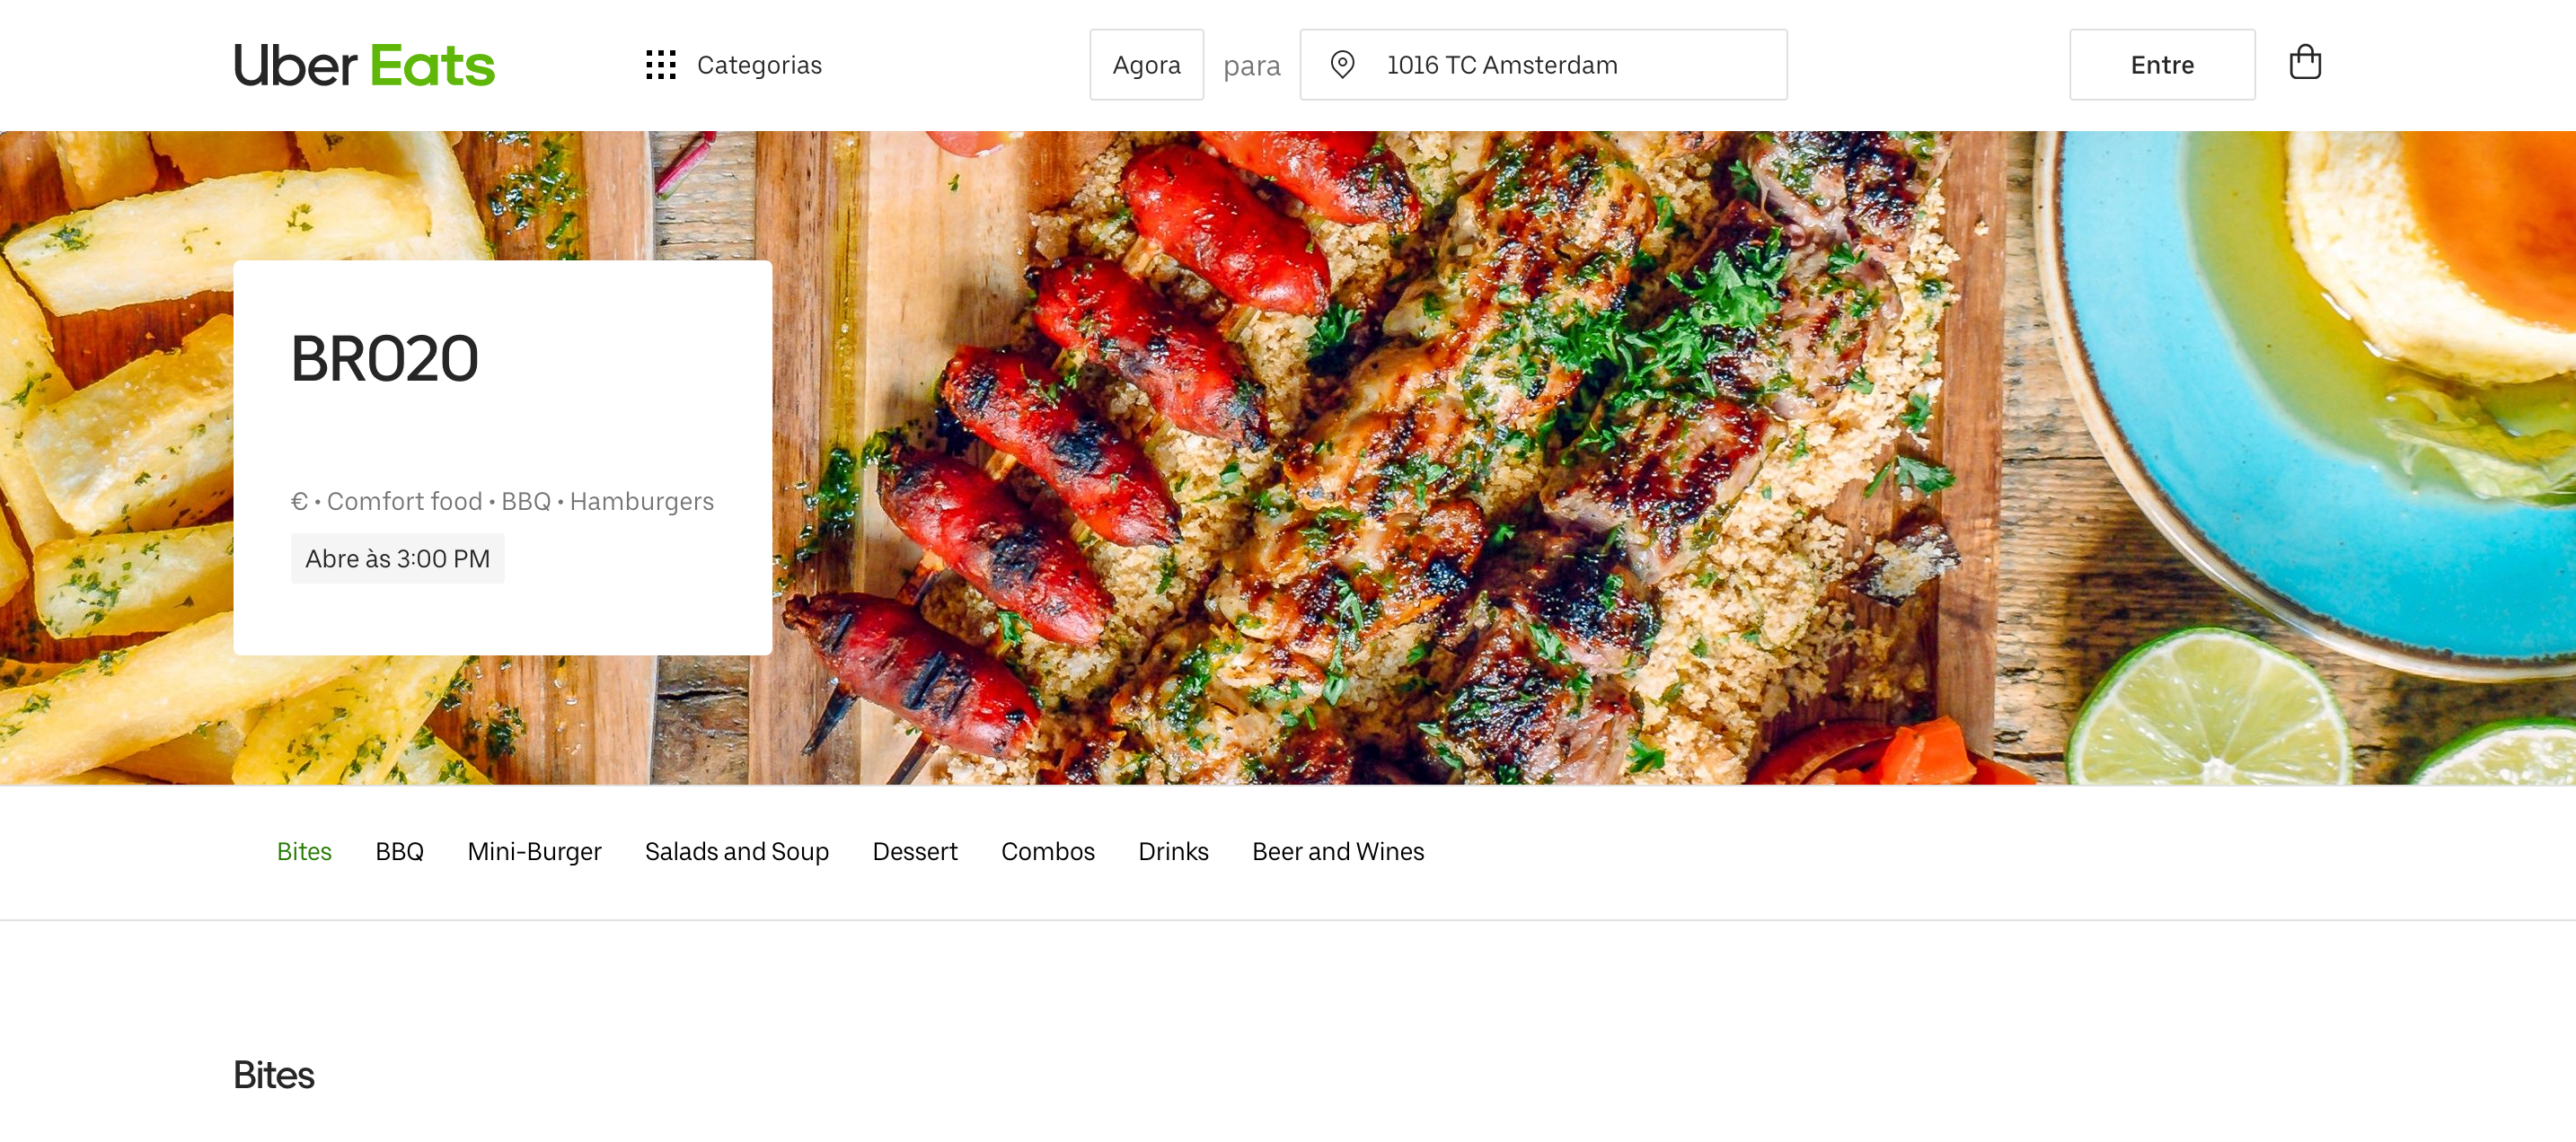 Uber Eats page